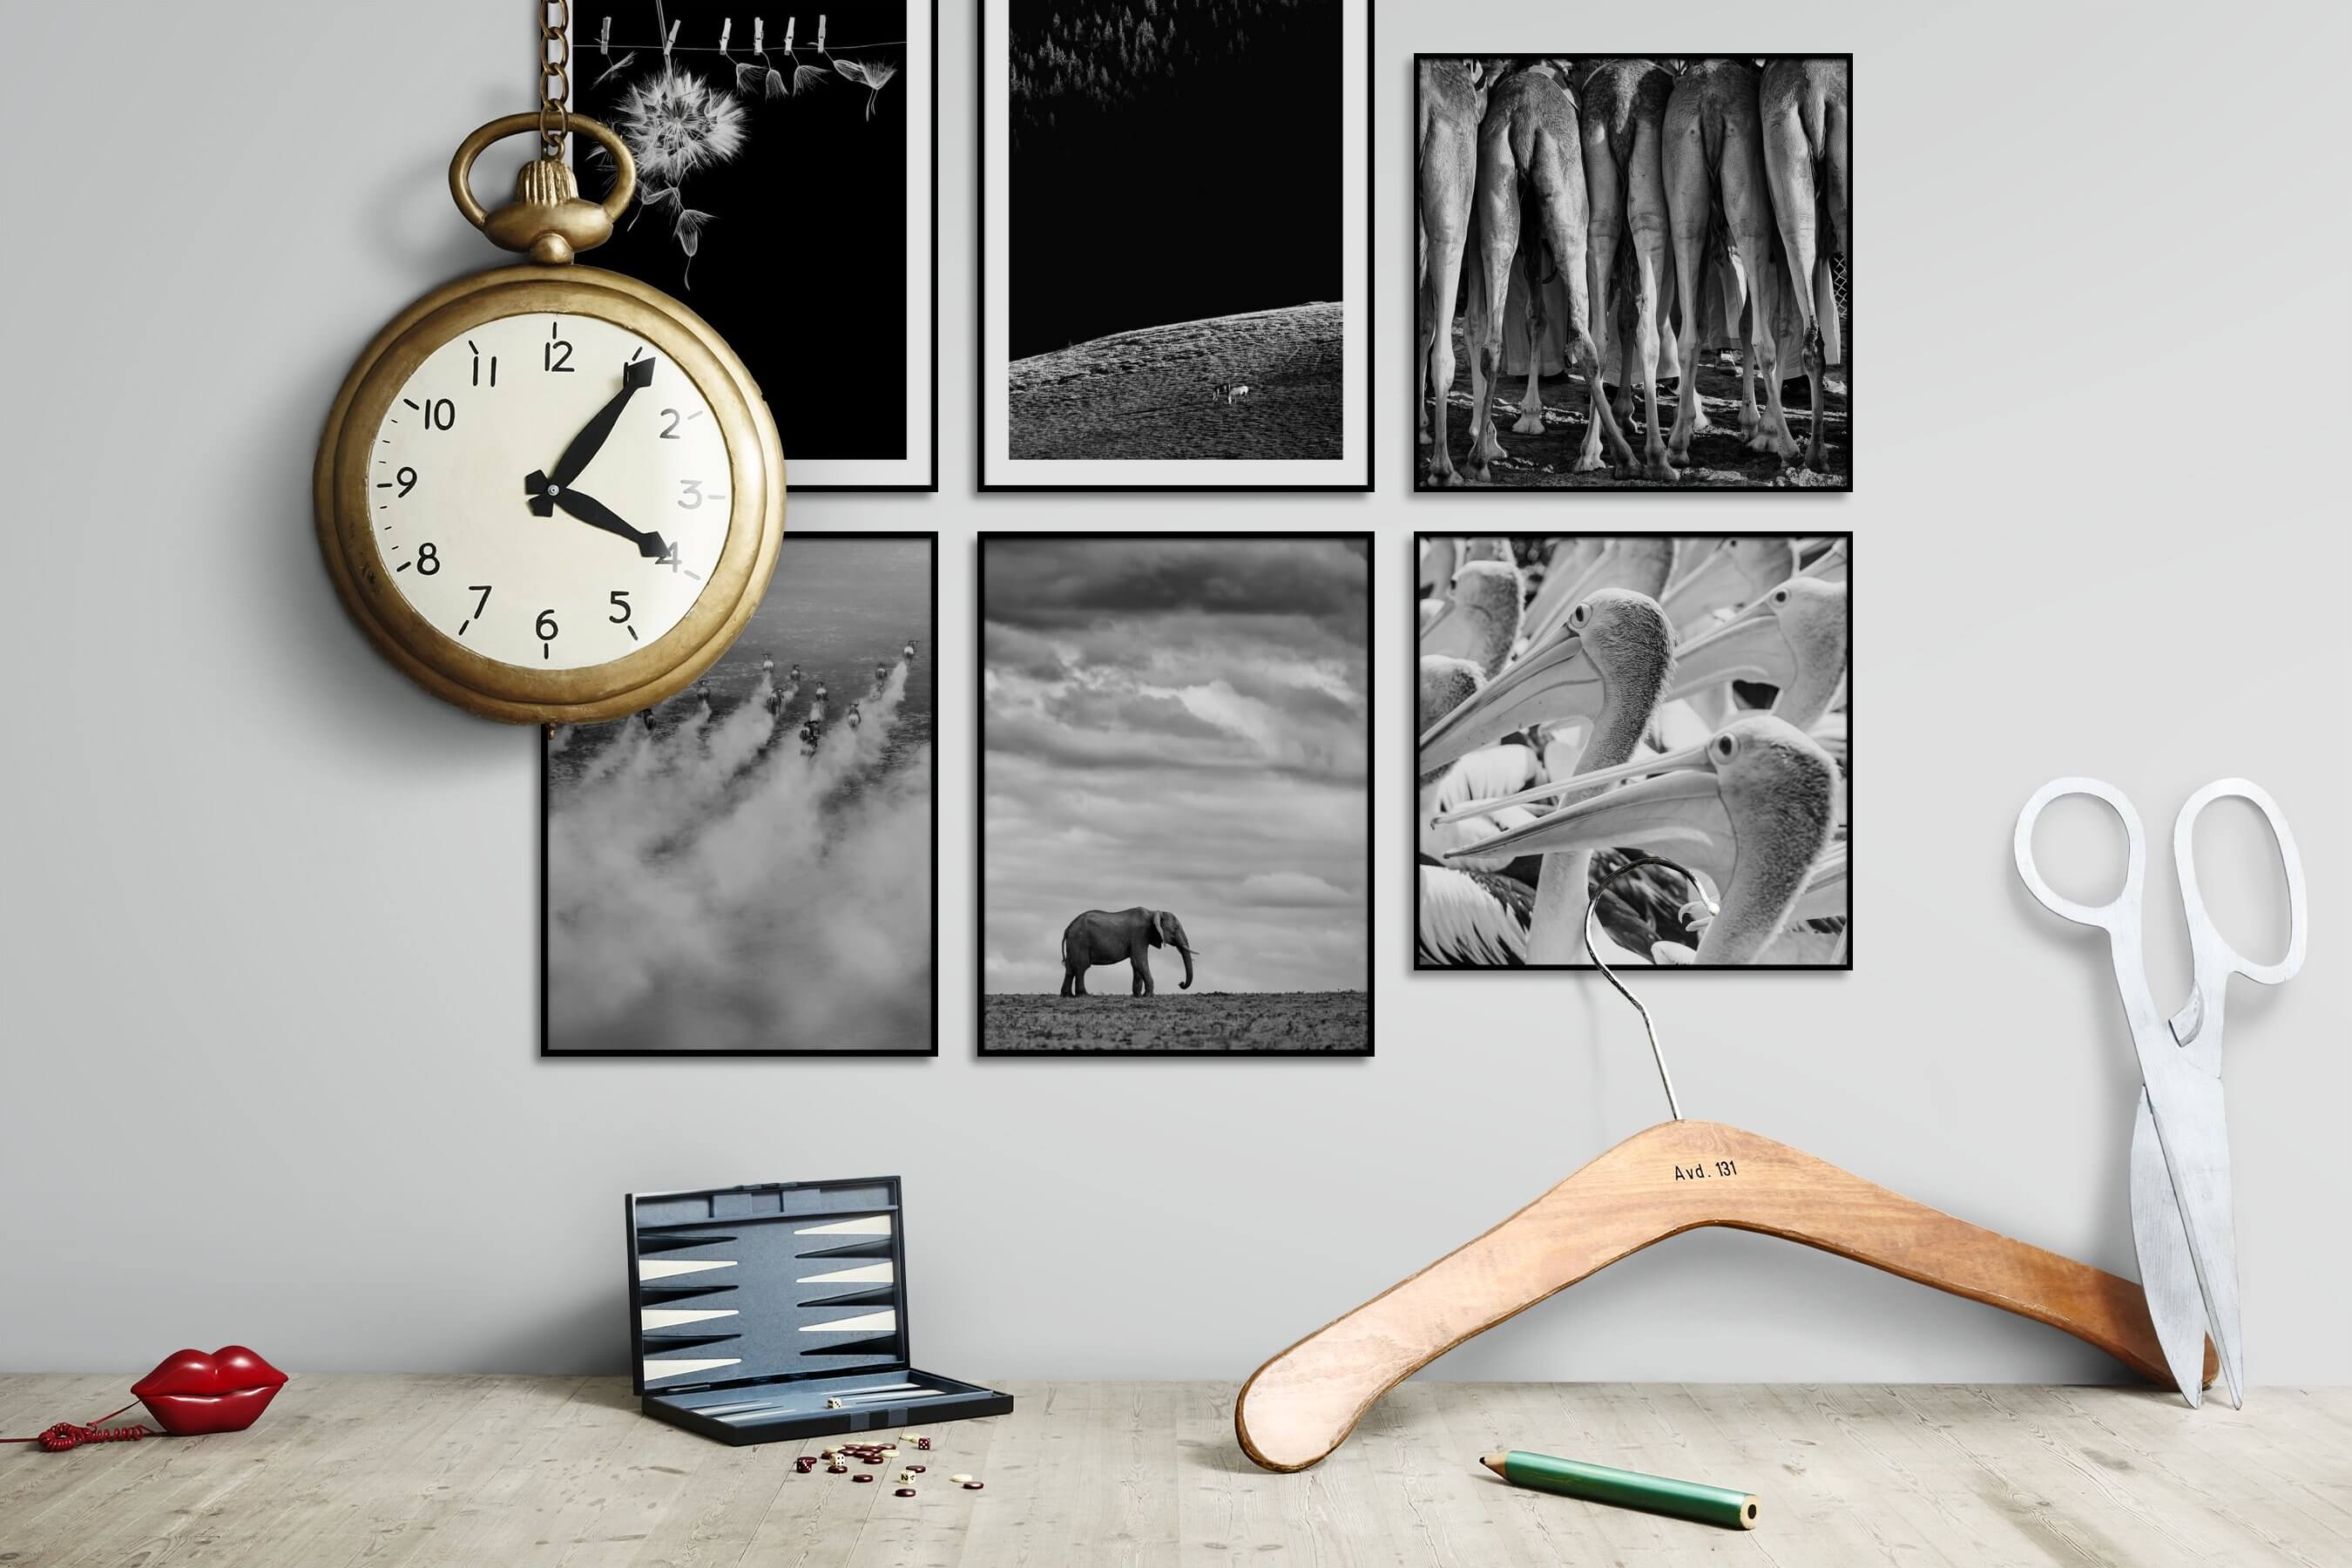 Gallery wall idea with six framed pictures arranged on a wall depicting Black & White, For the Minimalist, Flowers & Plants, Animals, Country Life, and For the Moderate